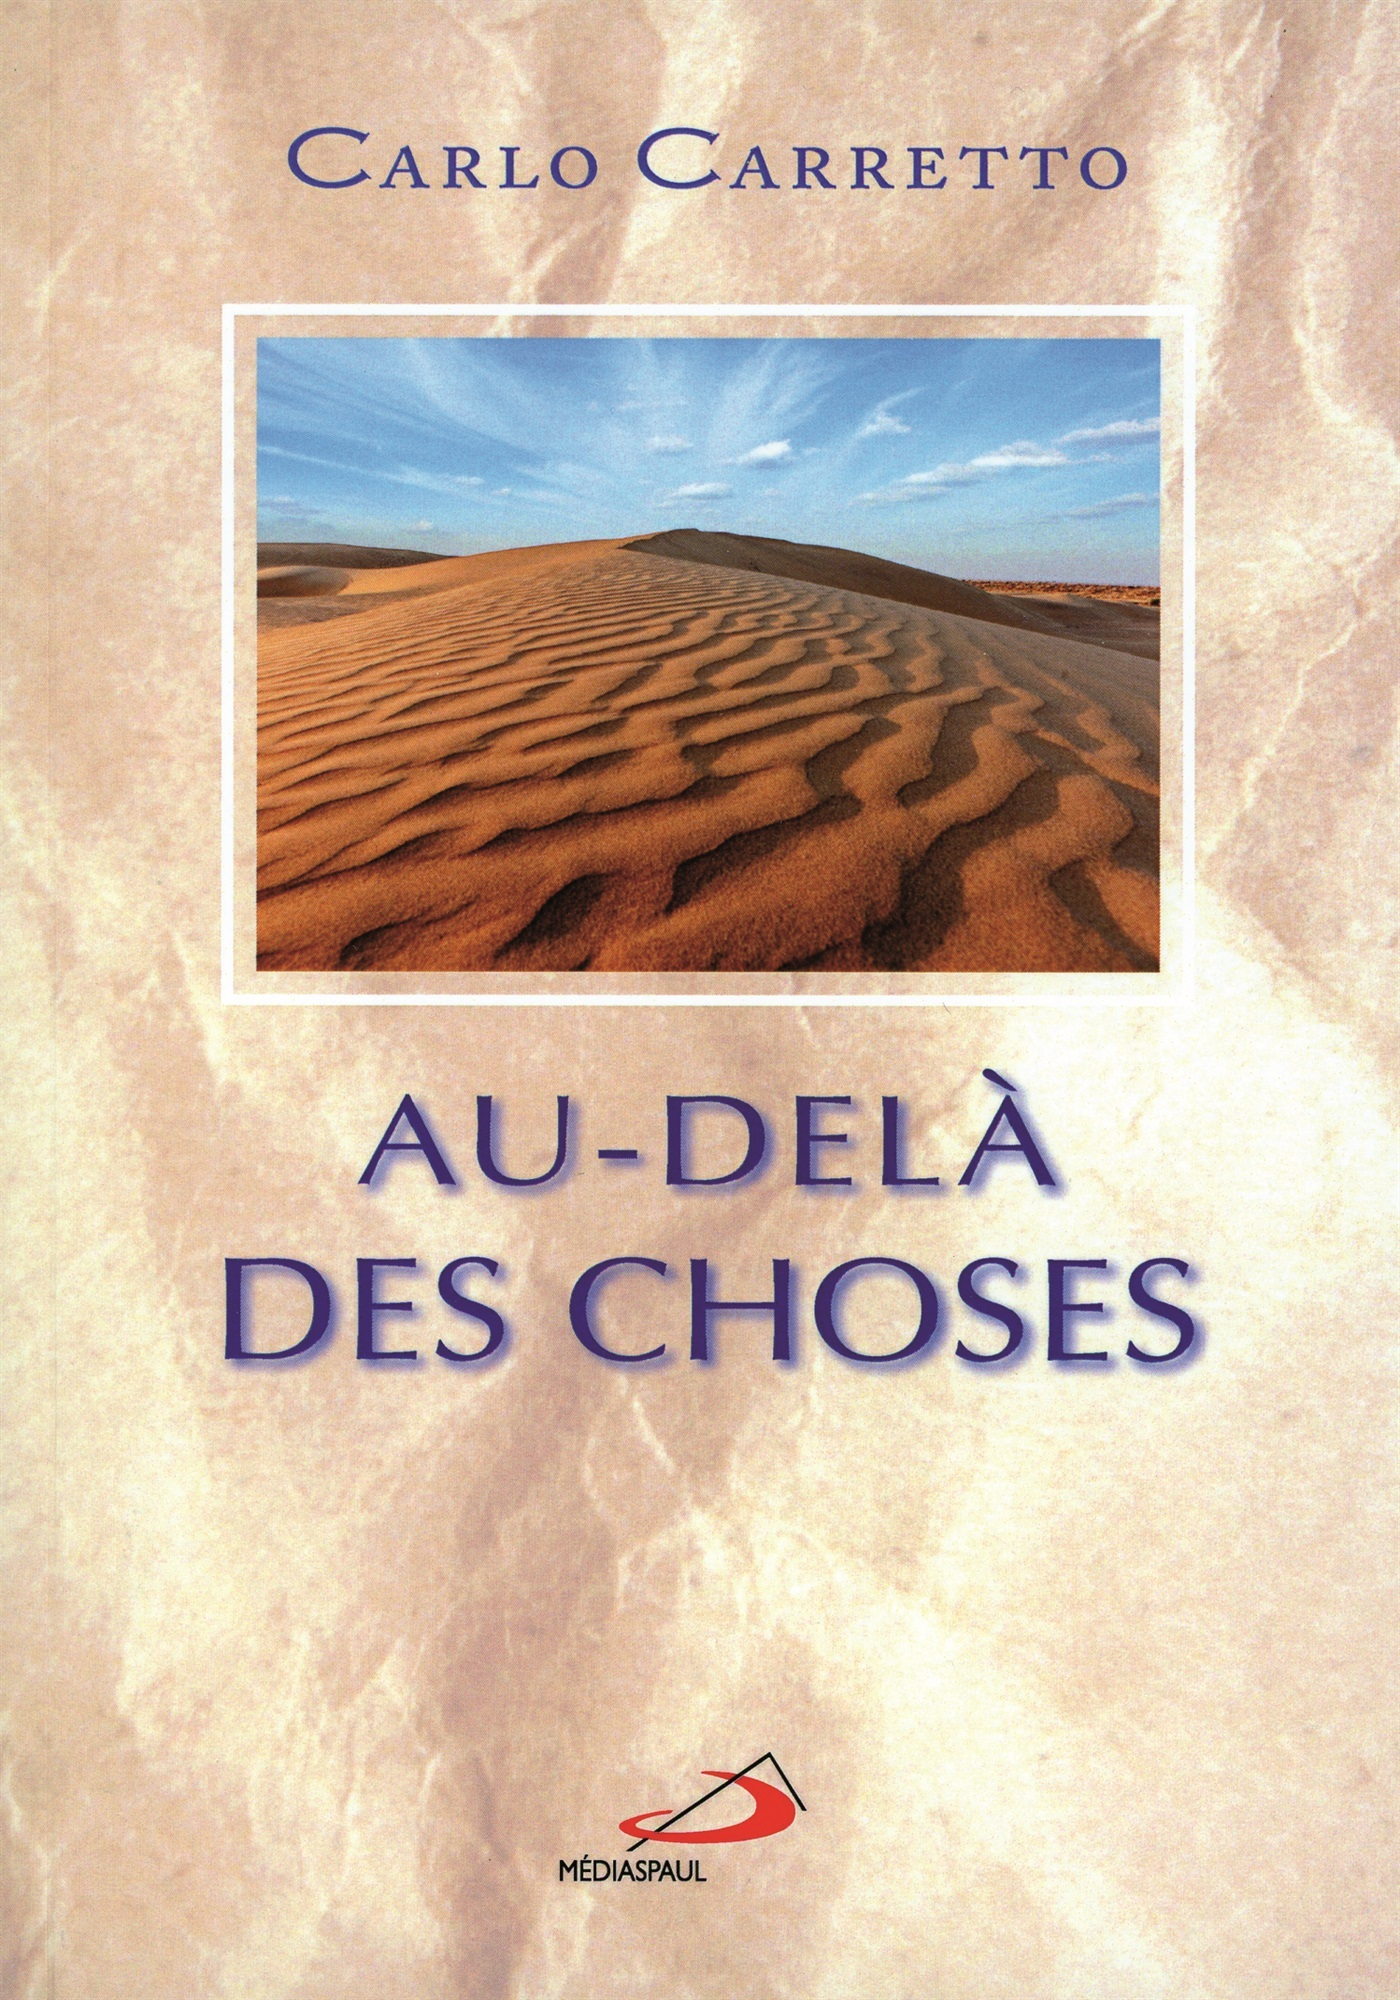 AU DELA DES CHOSES